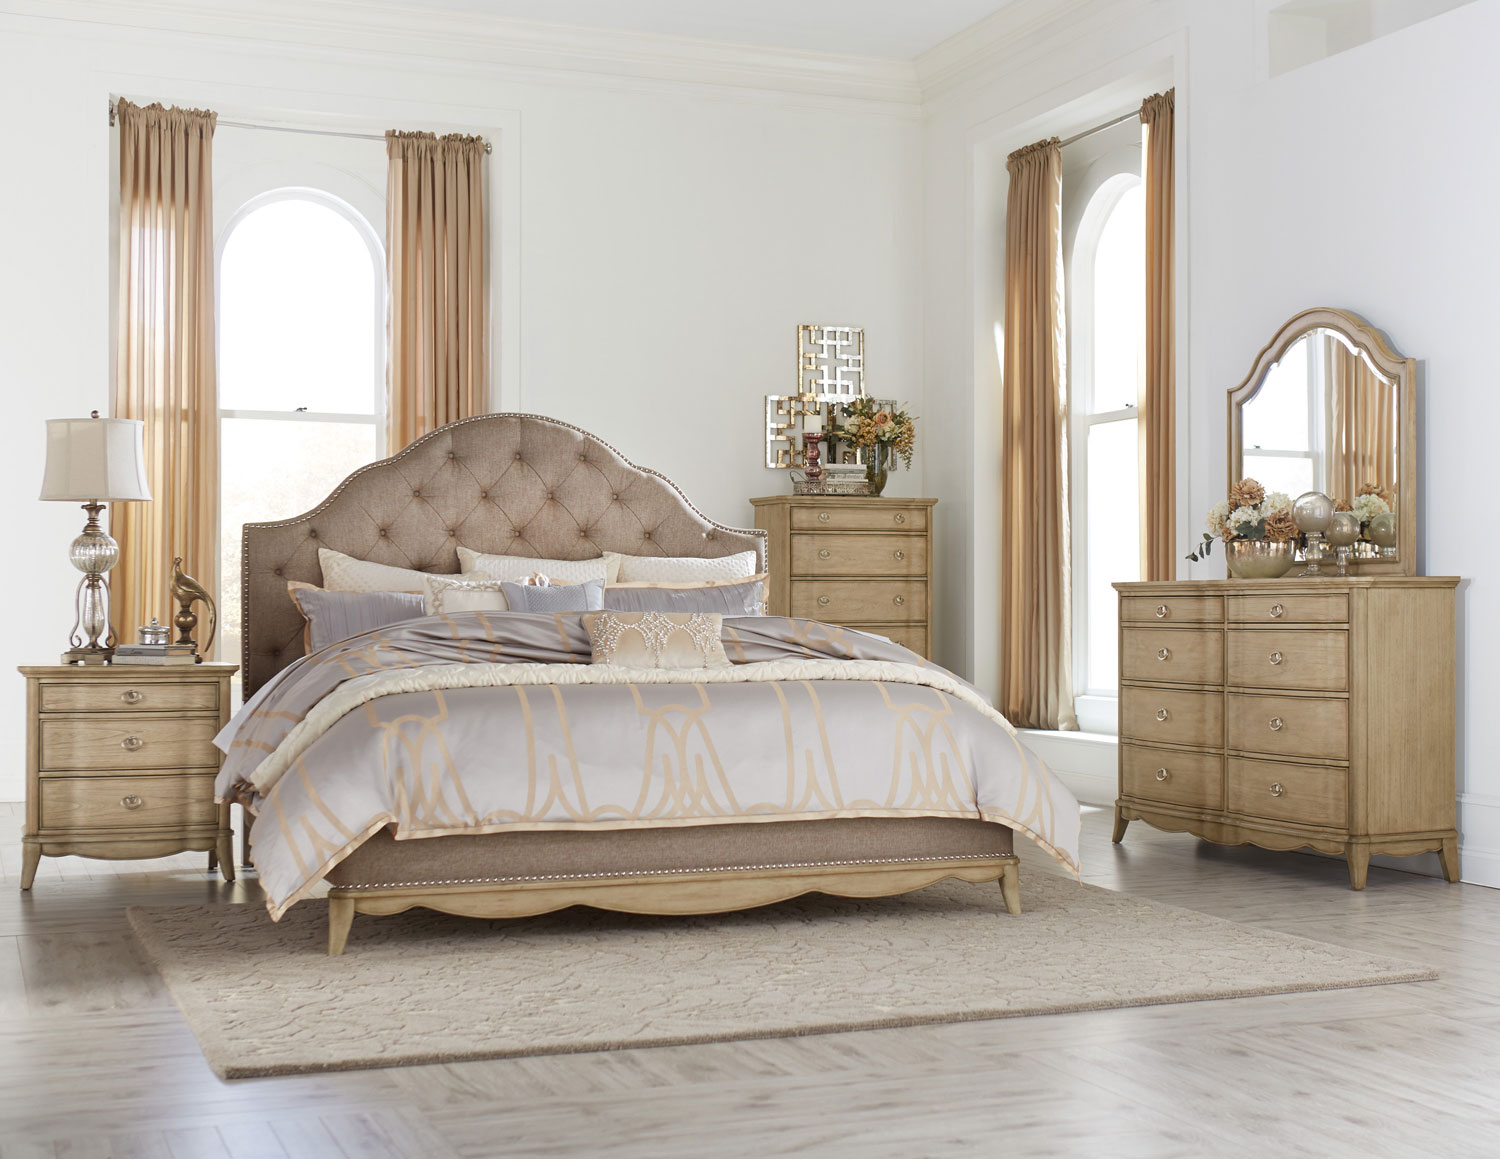 Homelegance Ashden Upholstered Bedroom Set - Driftwood B1918-1 ...